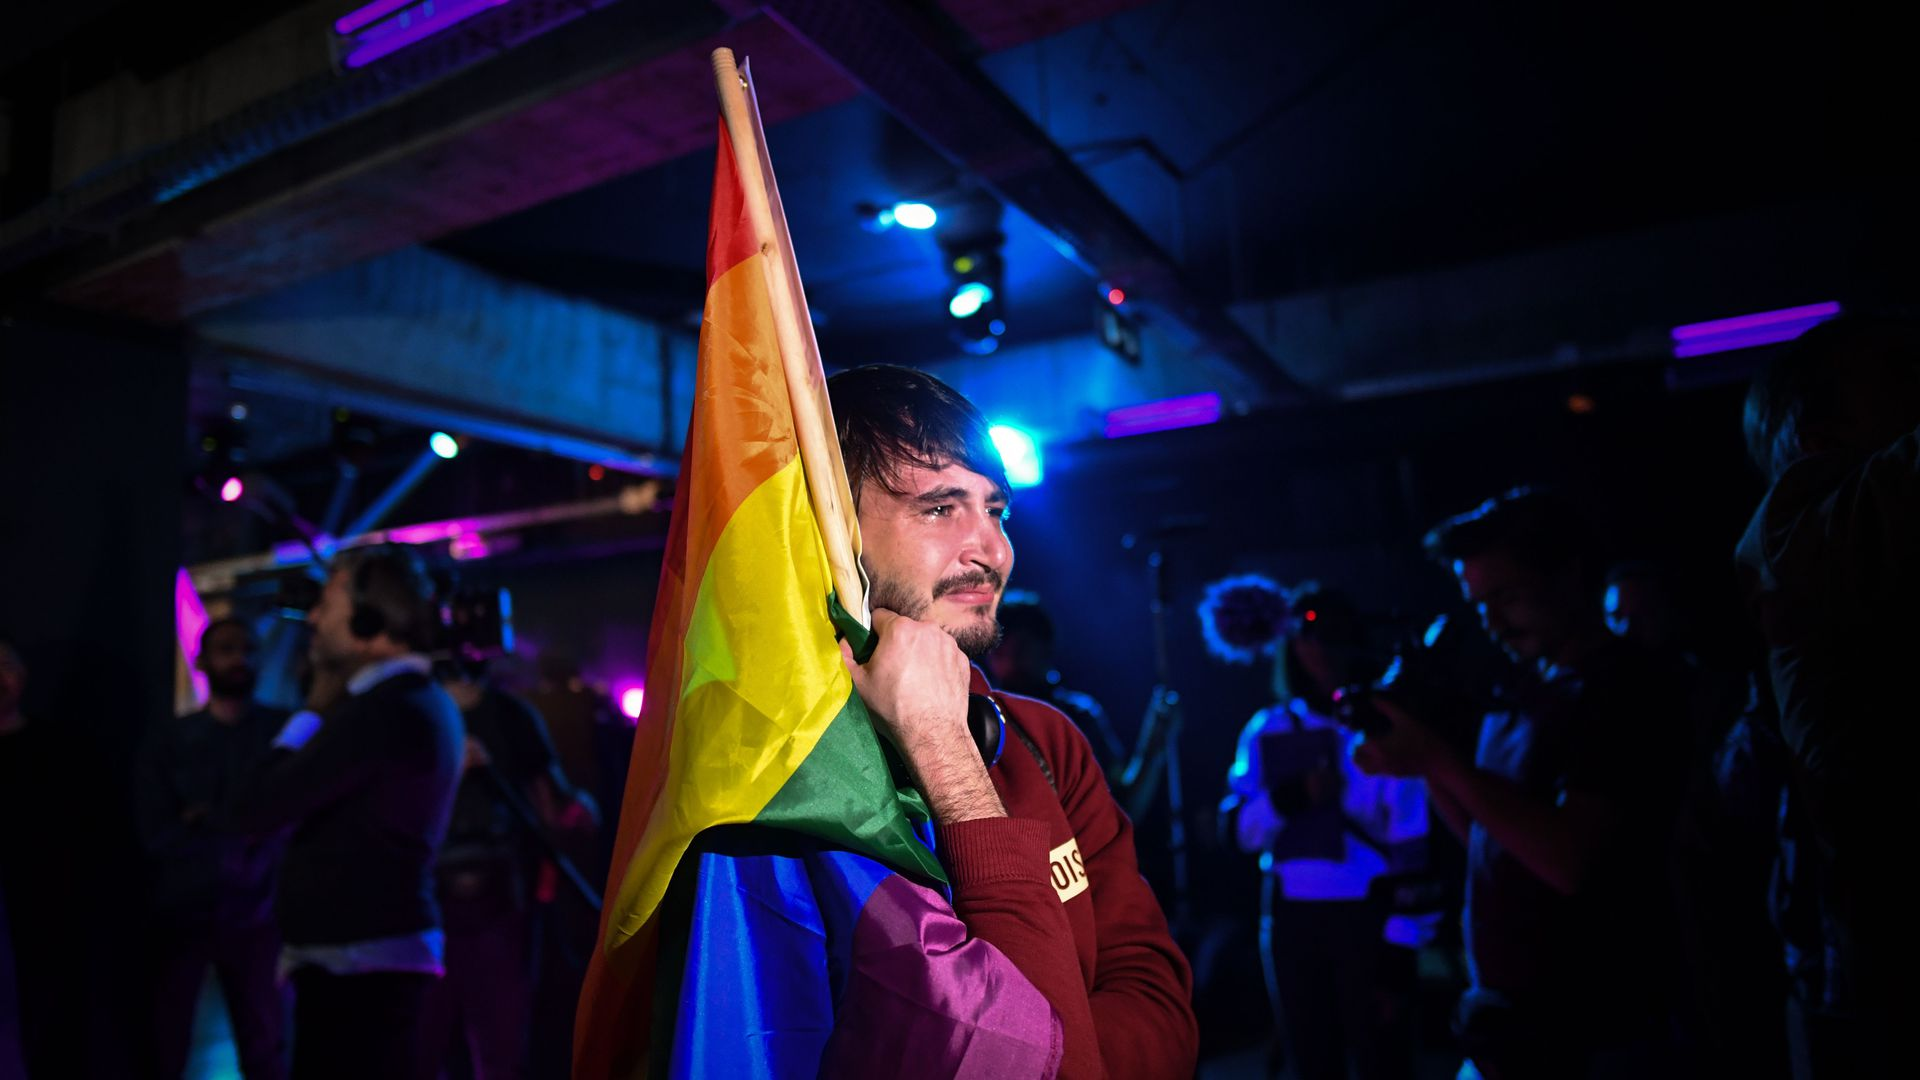 A member of the LGBT community gets emotional before results of referendum to stipulate that marriage is between a man and a woman. Photo: Daniel Mihailescu/ AFP/Getty Images